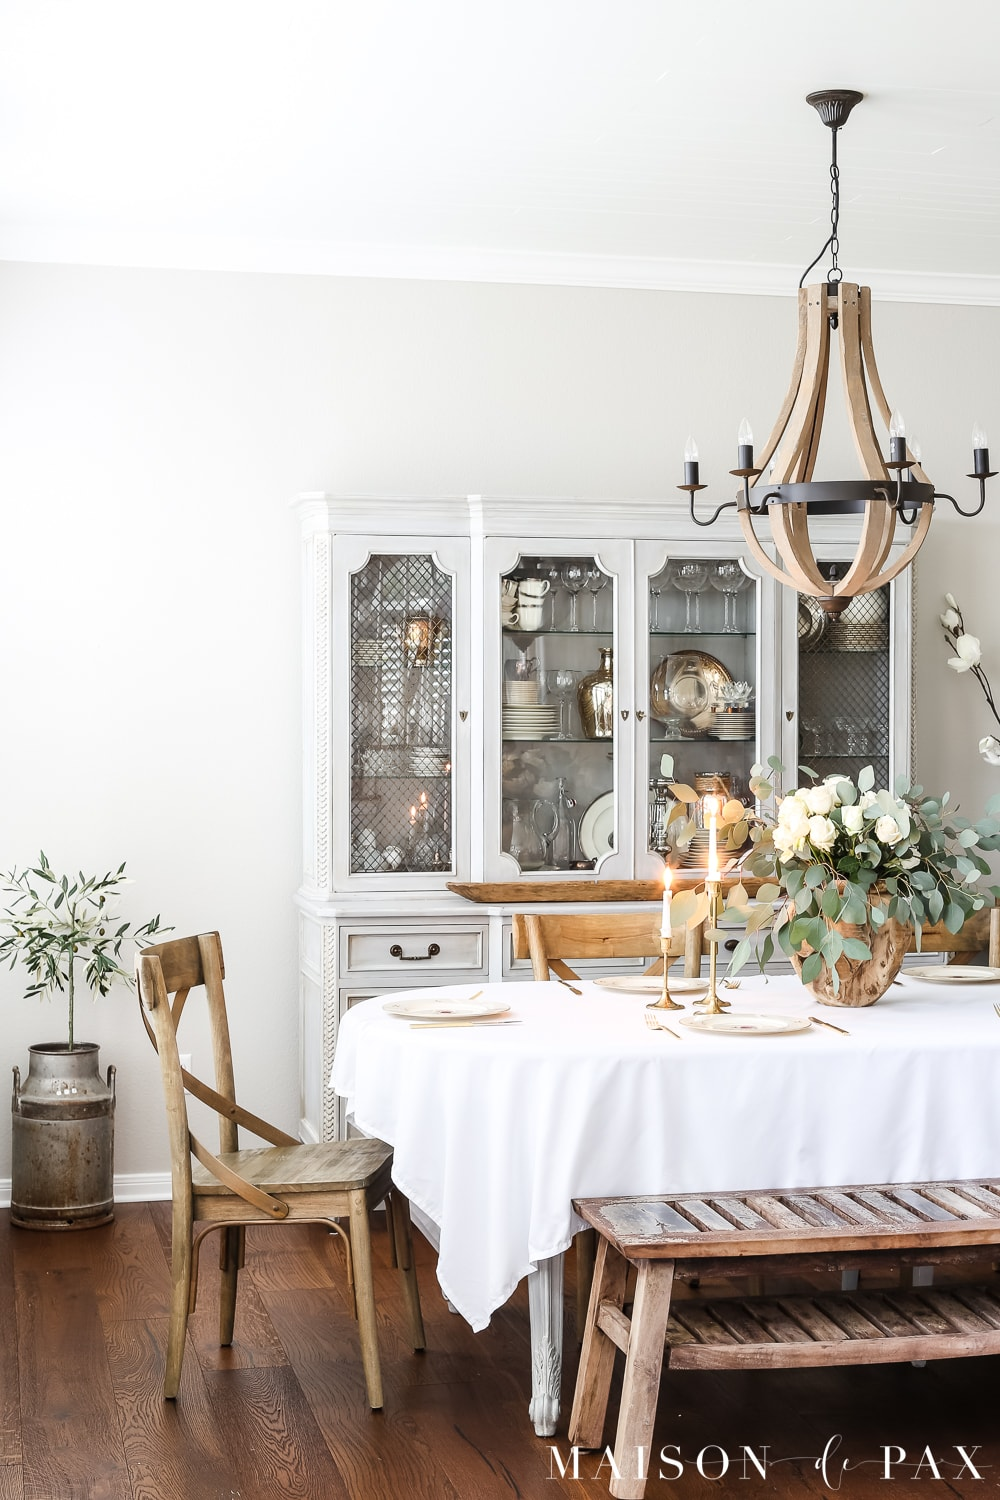 gorgeous french country dining room with a romantic rose and eucalyptus centerpiece - learn how to create this simple centerpiece #roseeucalyptus #tablescape #centerpiece #romantictable #frenchcountrydecor